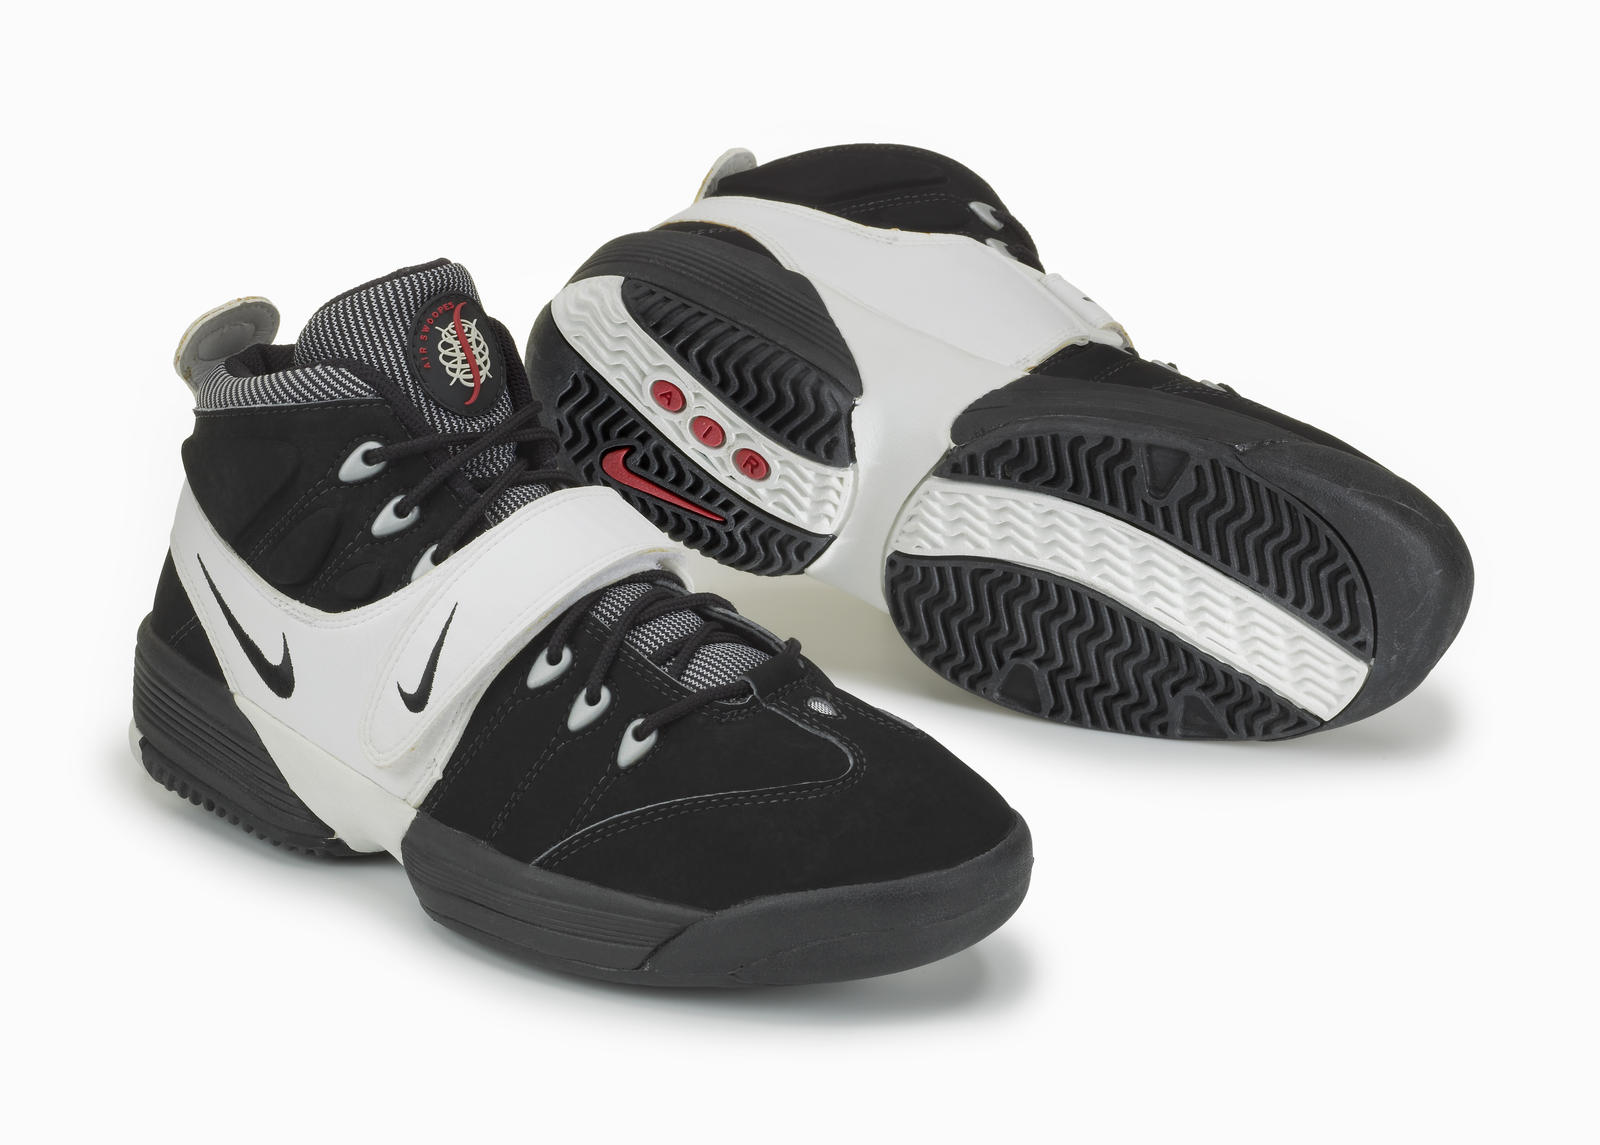 Nike Air College Force Basketball Shoes